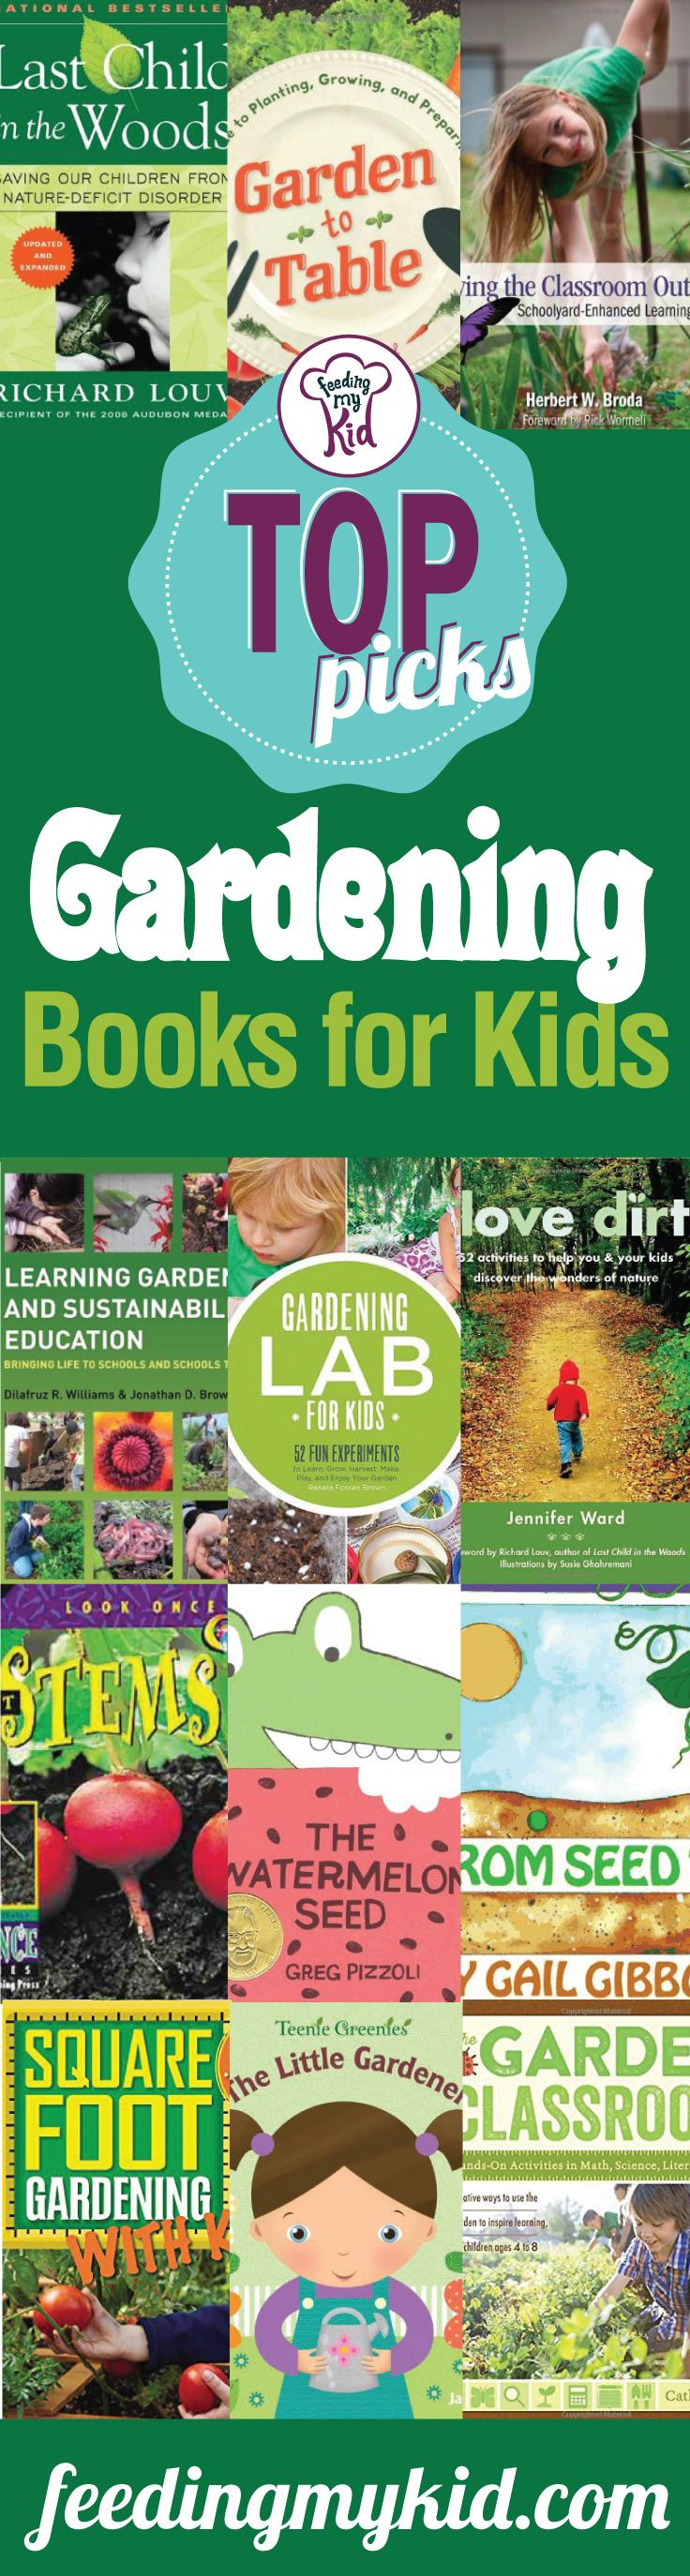 Top Picks: Gardening Books for Kids - Do you have a picky eater? No worries. The more exposure a child has to foods the more likely the child will be at eating these foods. So plant come carrots, green beans and peas and you'll soon see your child eating foods he normally wouldn't even touch. These books are the perfect inspiration you need to get your picky eater eating.